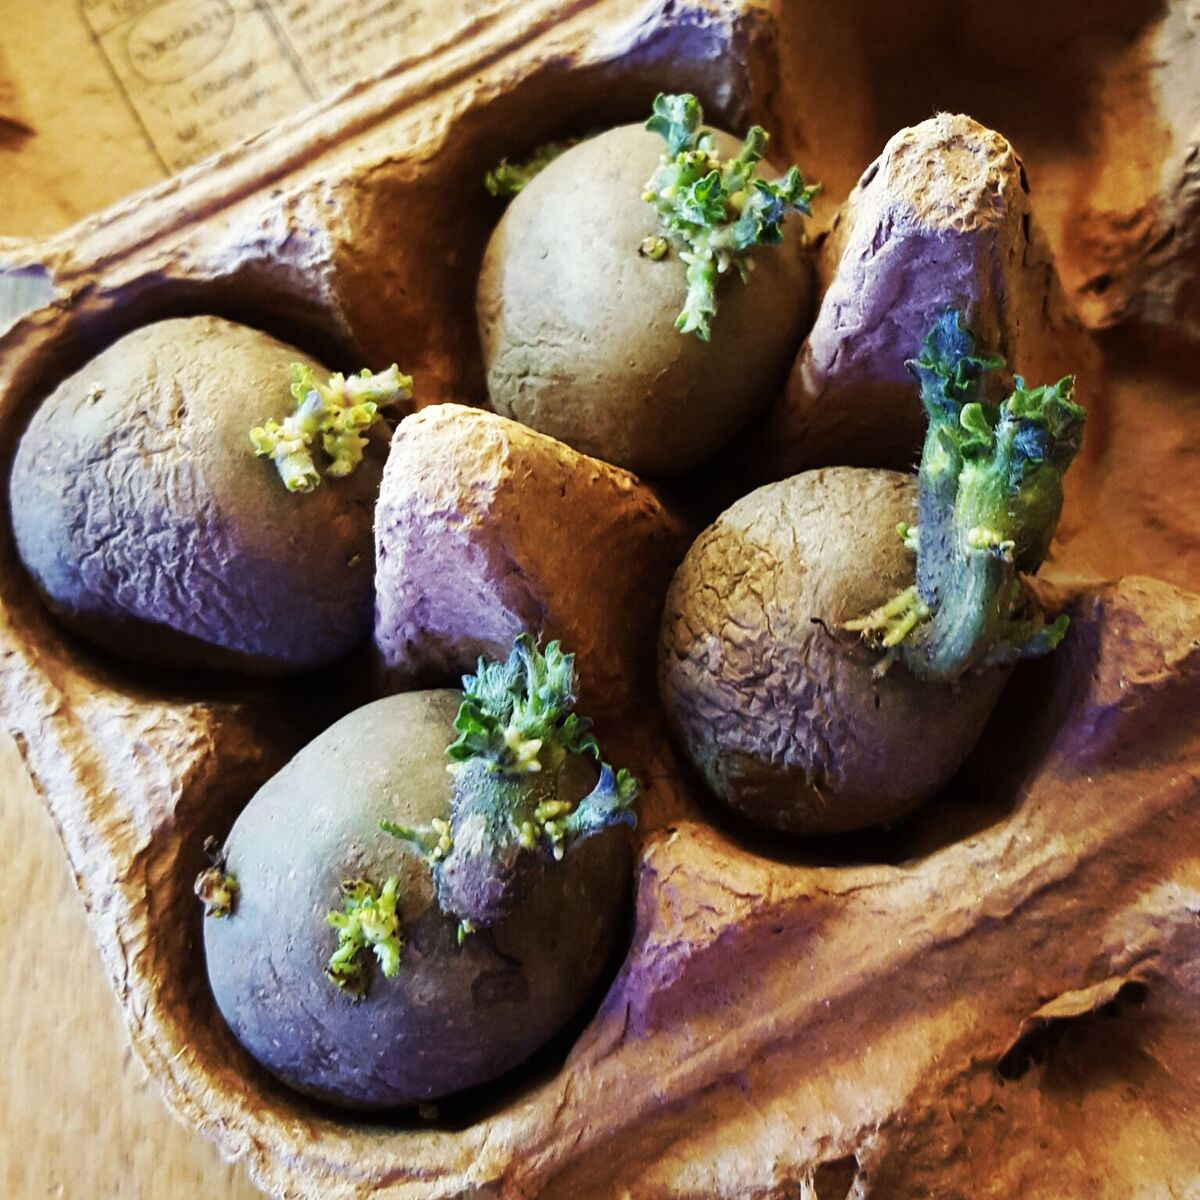 Growing Hydroponic Potatoes Latest News From Grown Up